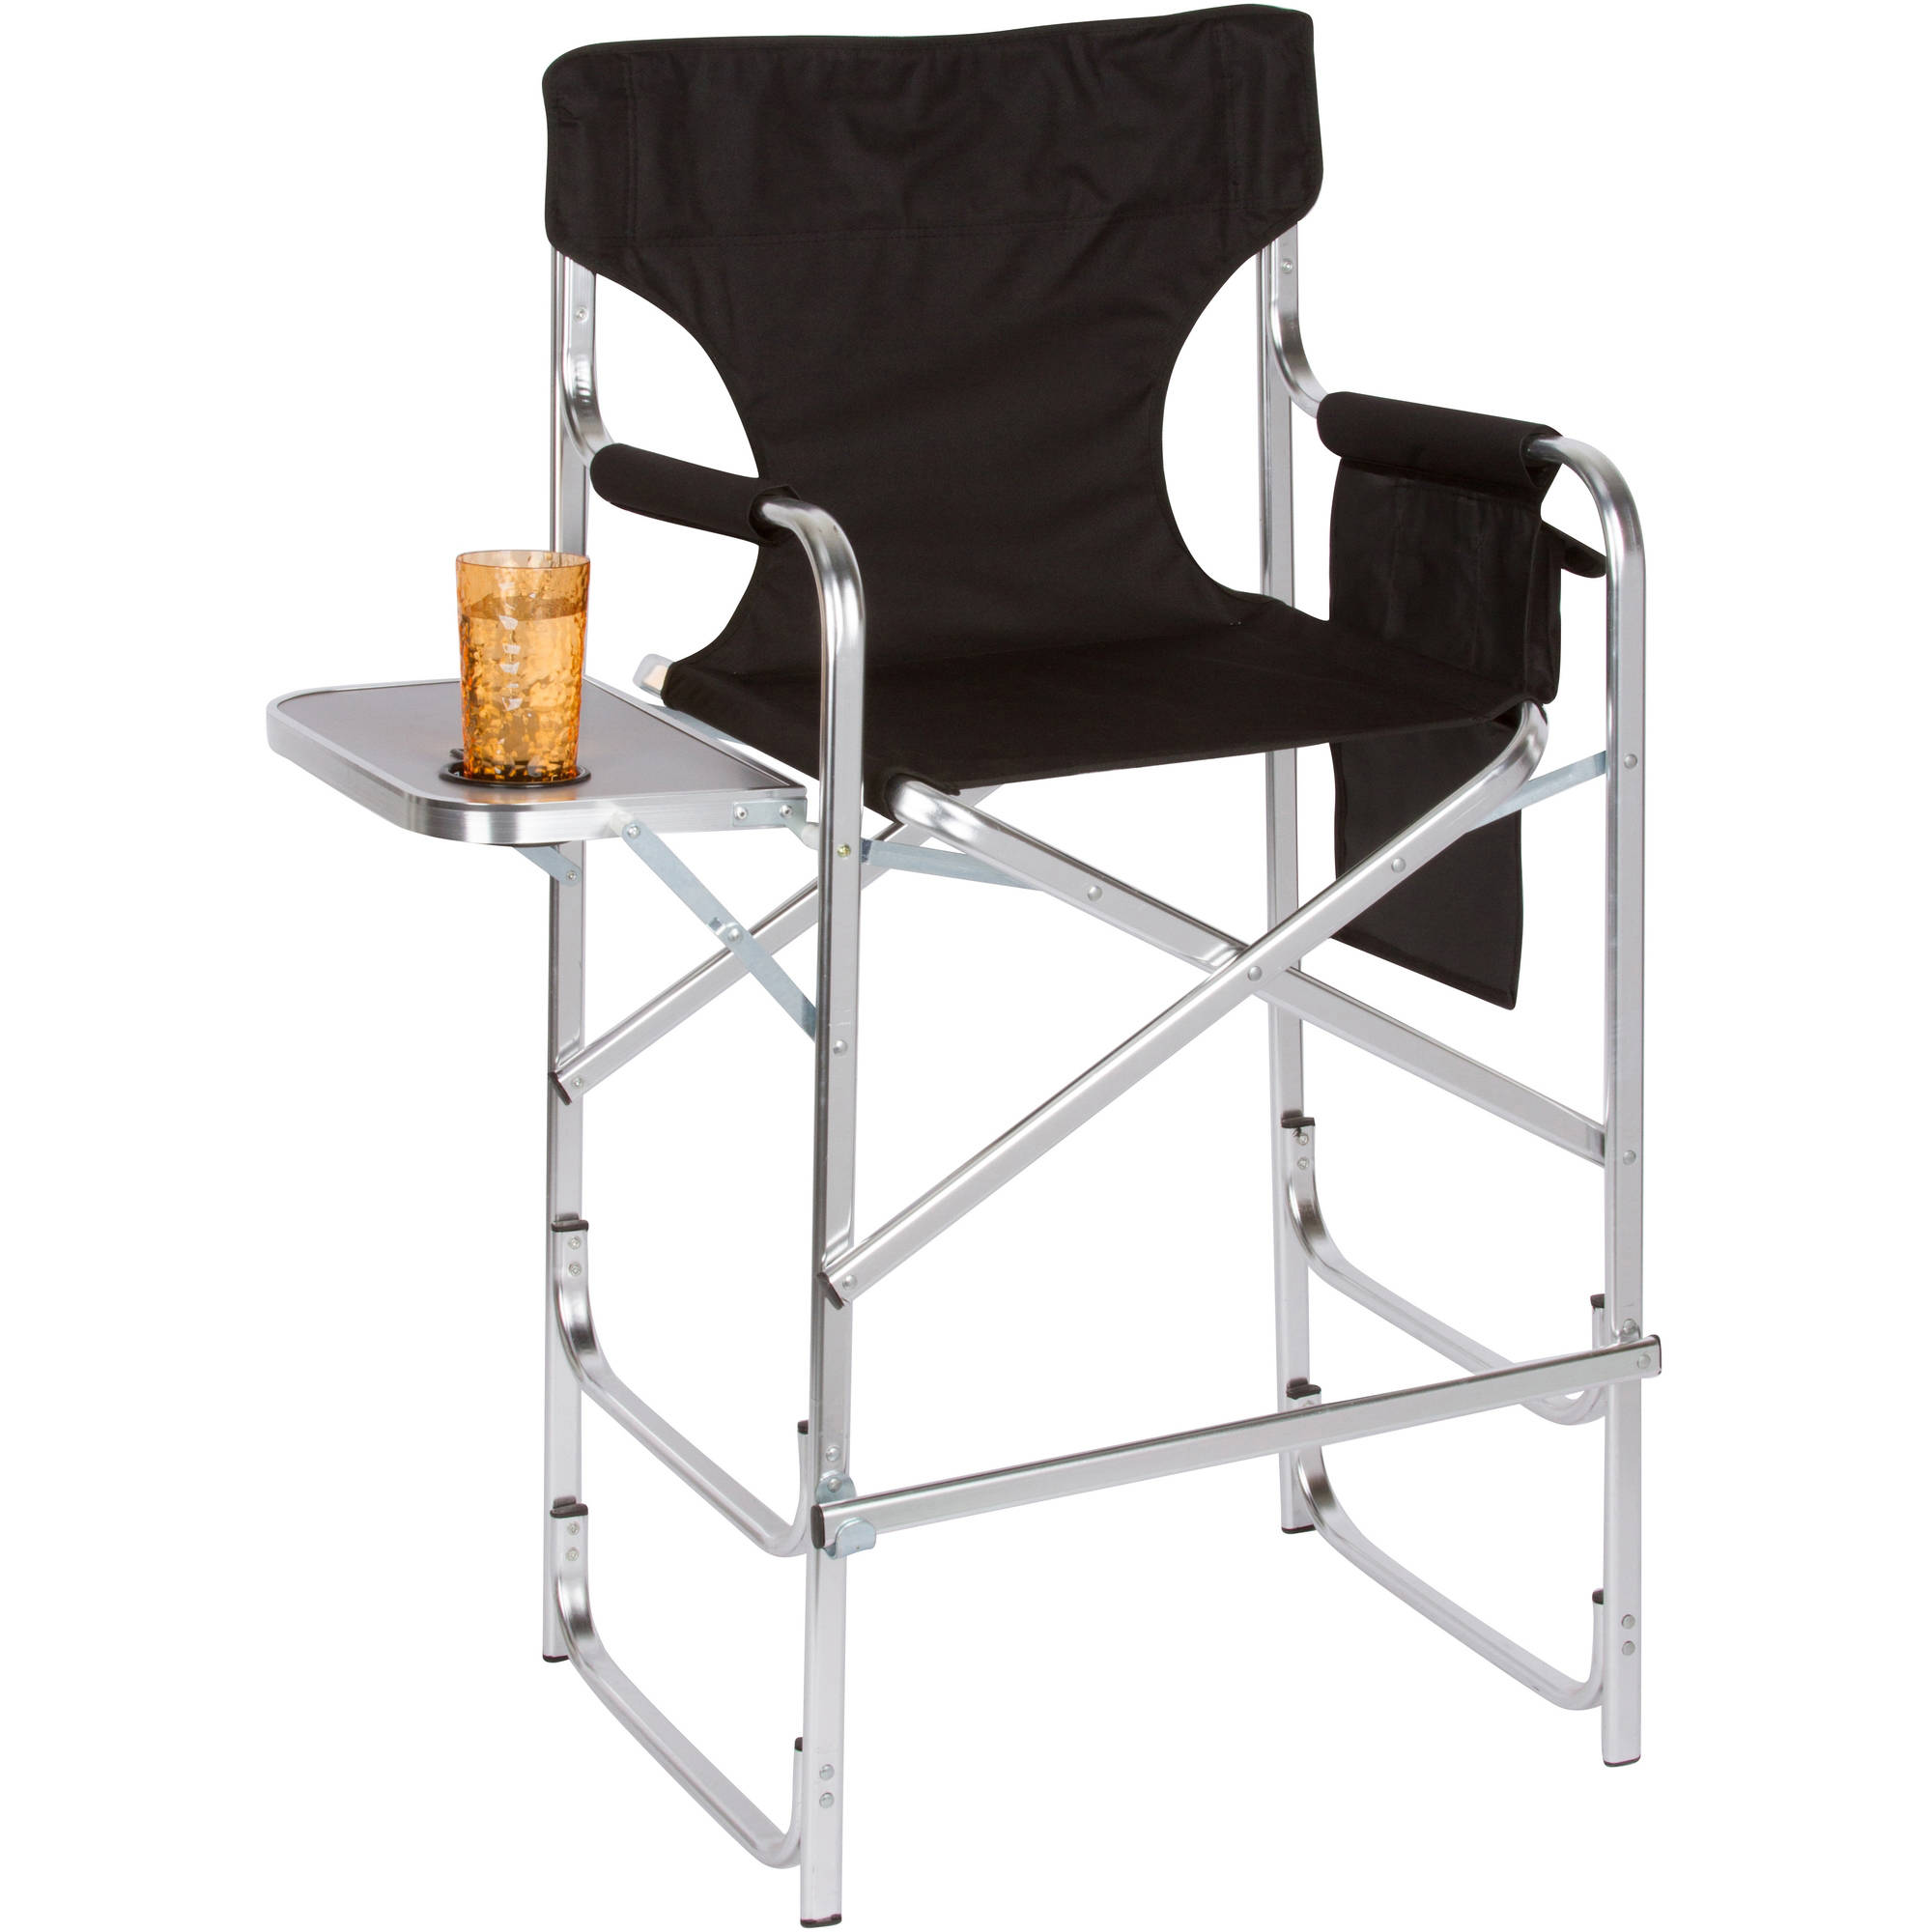 Genial Aluminum Frame Tall Directoru0027s Chair With Side Table By Trademark  Innovations, Black